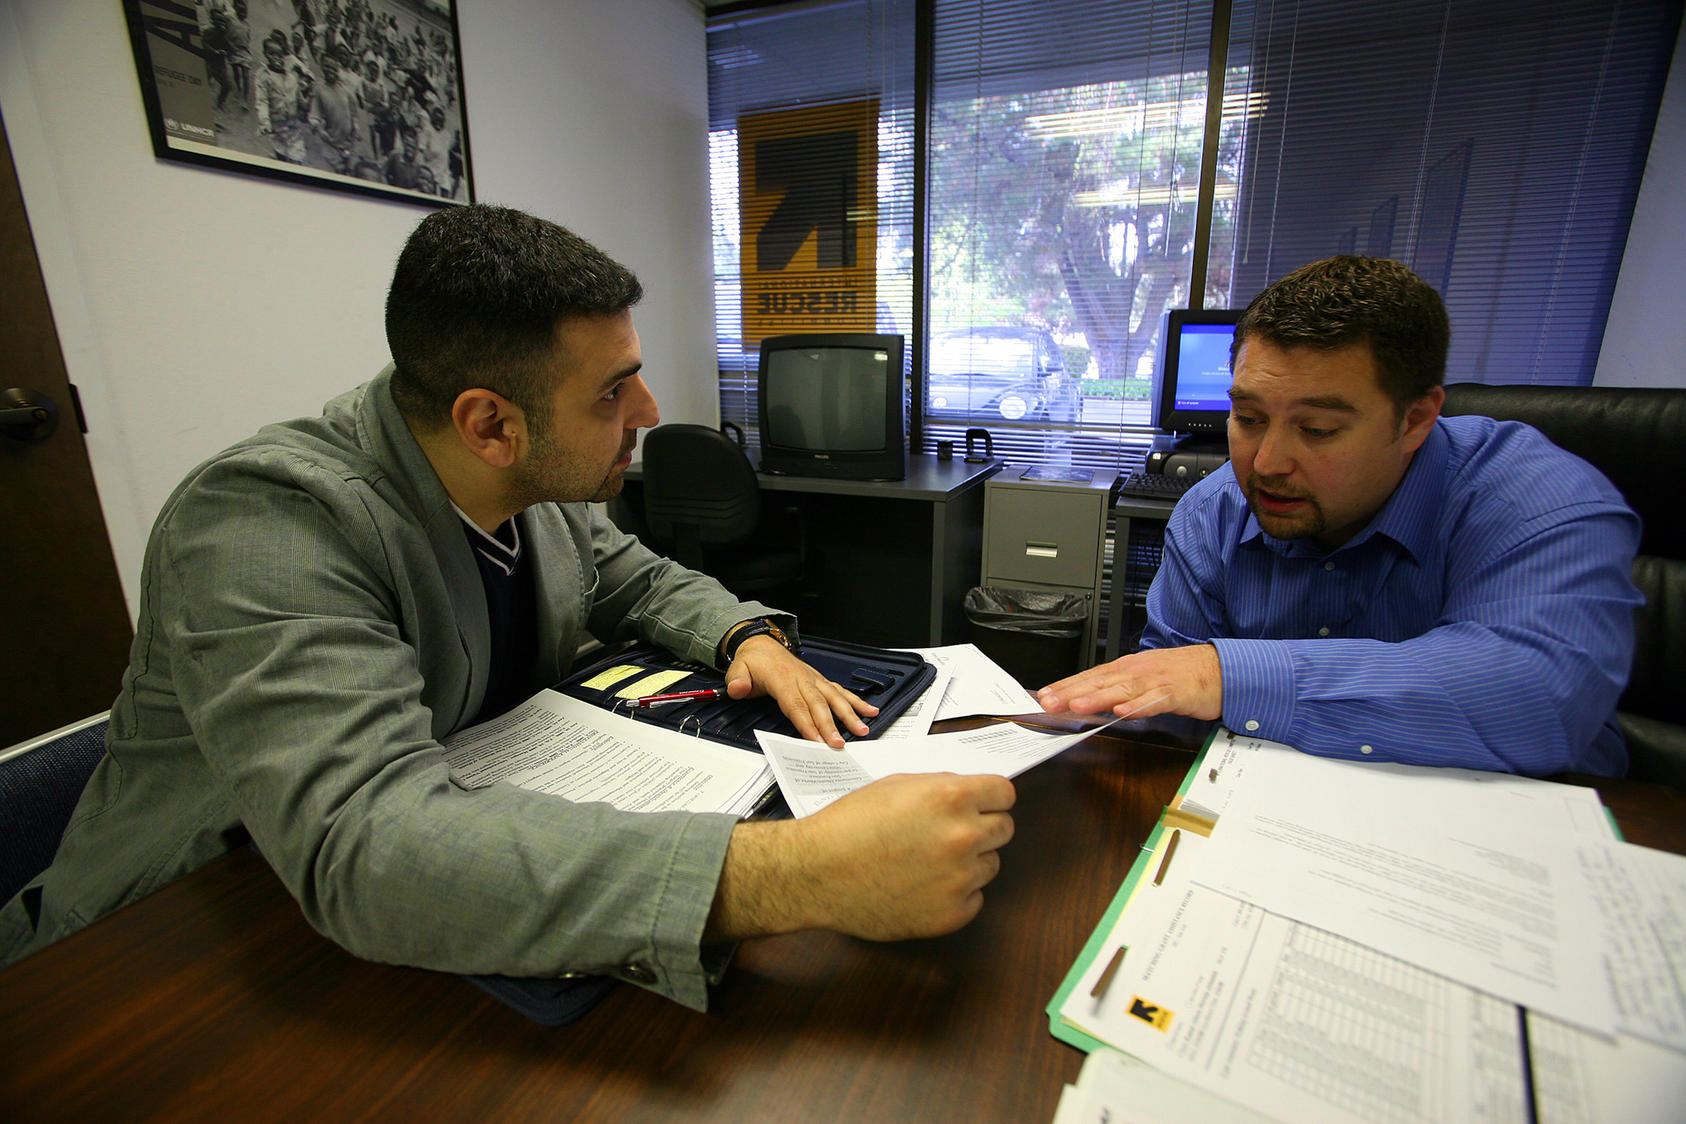 26-year-old Iraqi refugee, left, working on his resume with Sead Eminovic